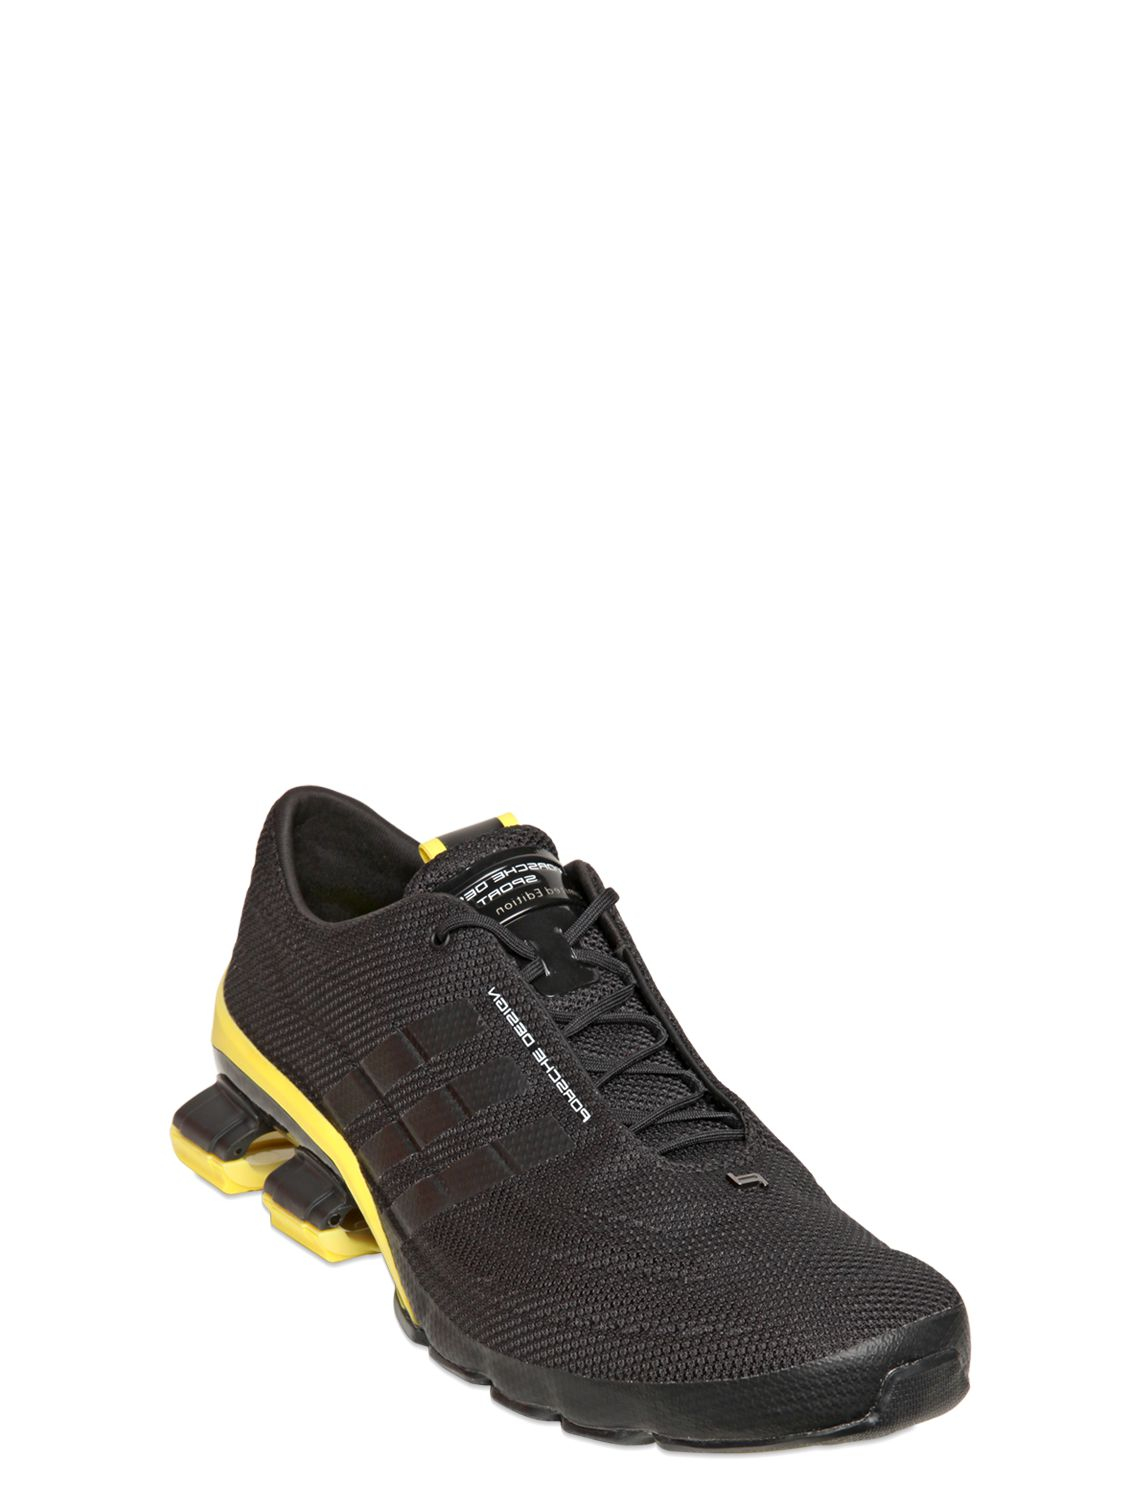 Porsche design Bounce S4 Sneakers in Black for Men